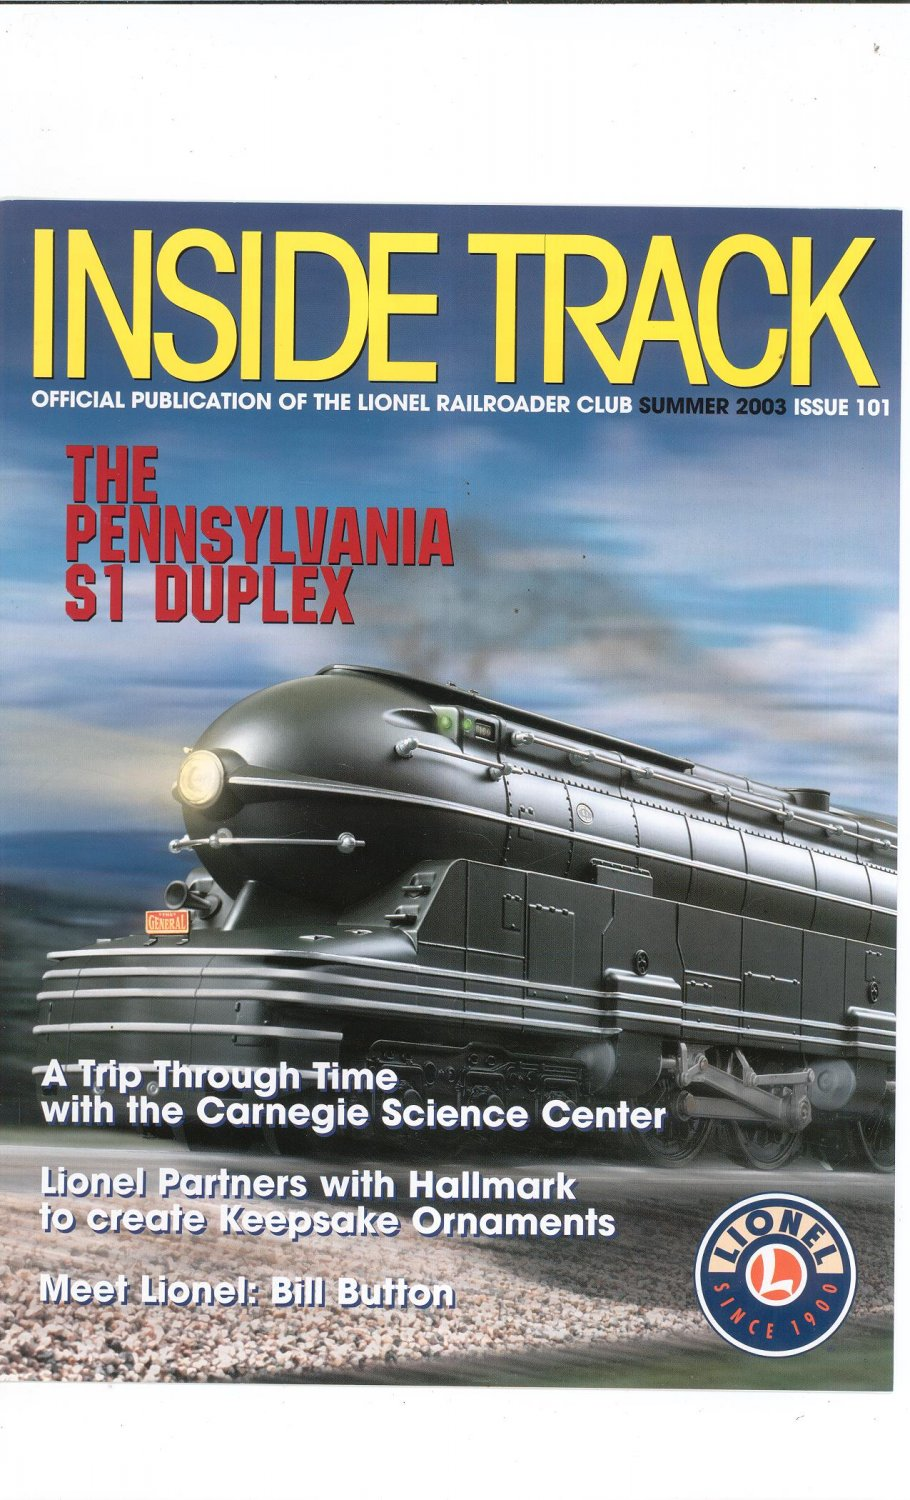 Lionel Railroader Club Inside Track Summer 2003 Issue 101 Not PDF Train